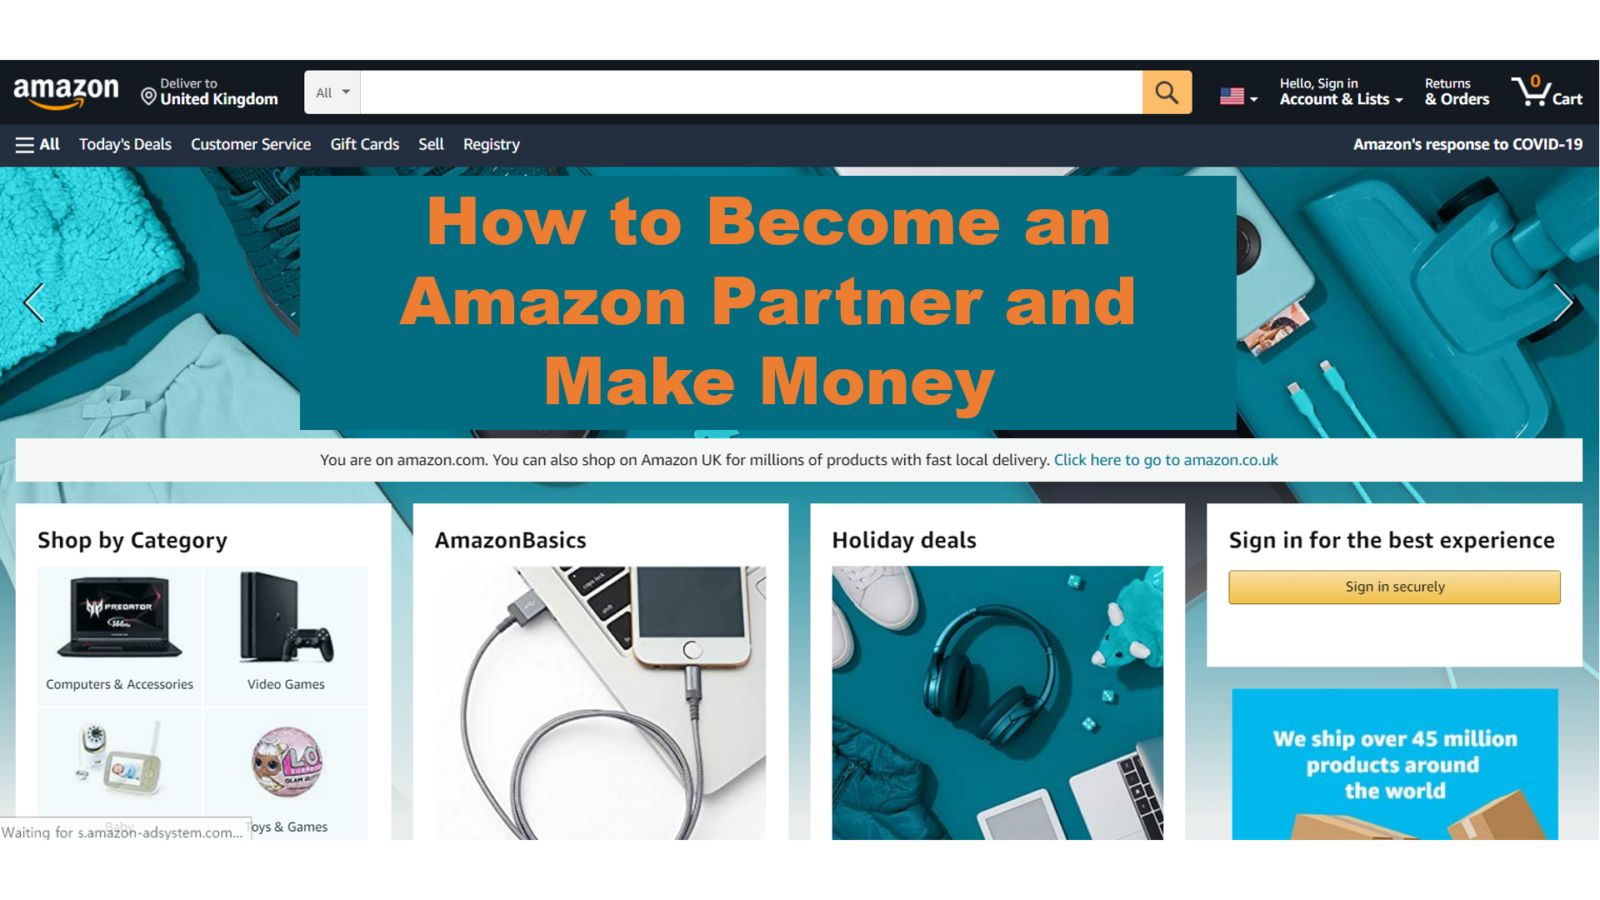 How to Become an Amazon Partner and Make Money